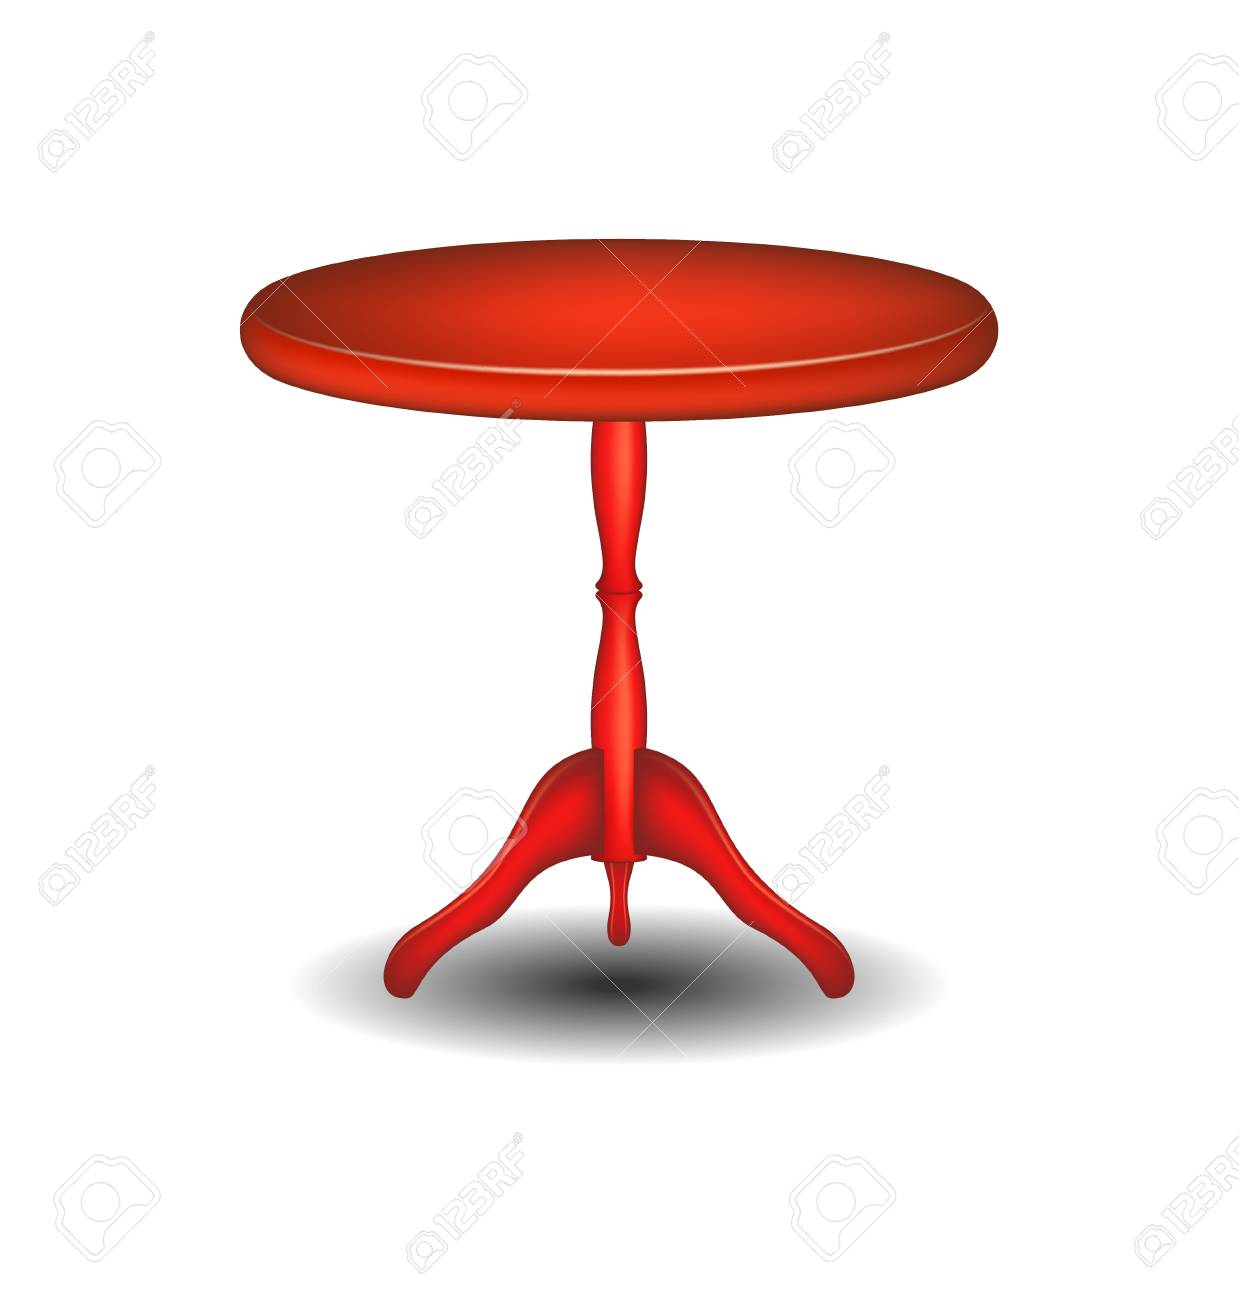 Round Table Madera.Wooden Round Table In Red Design